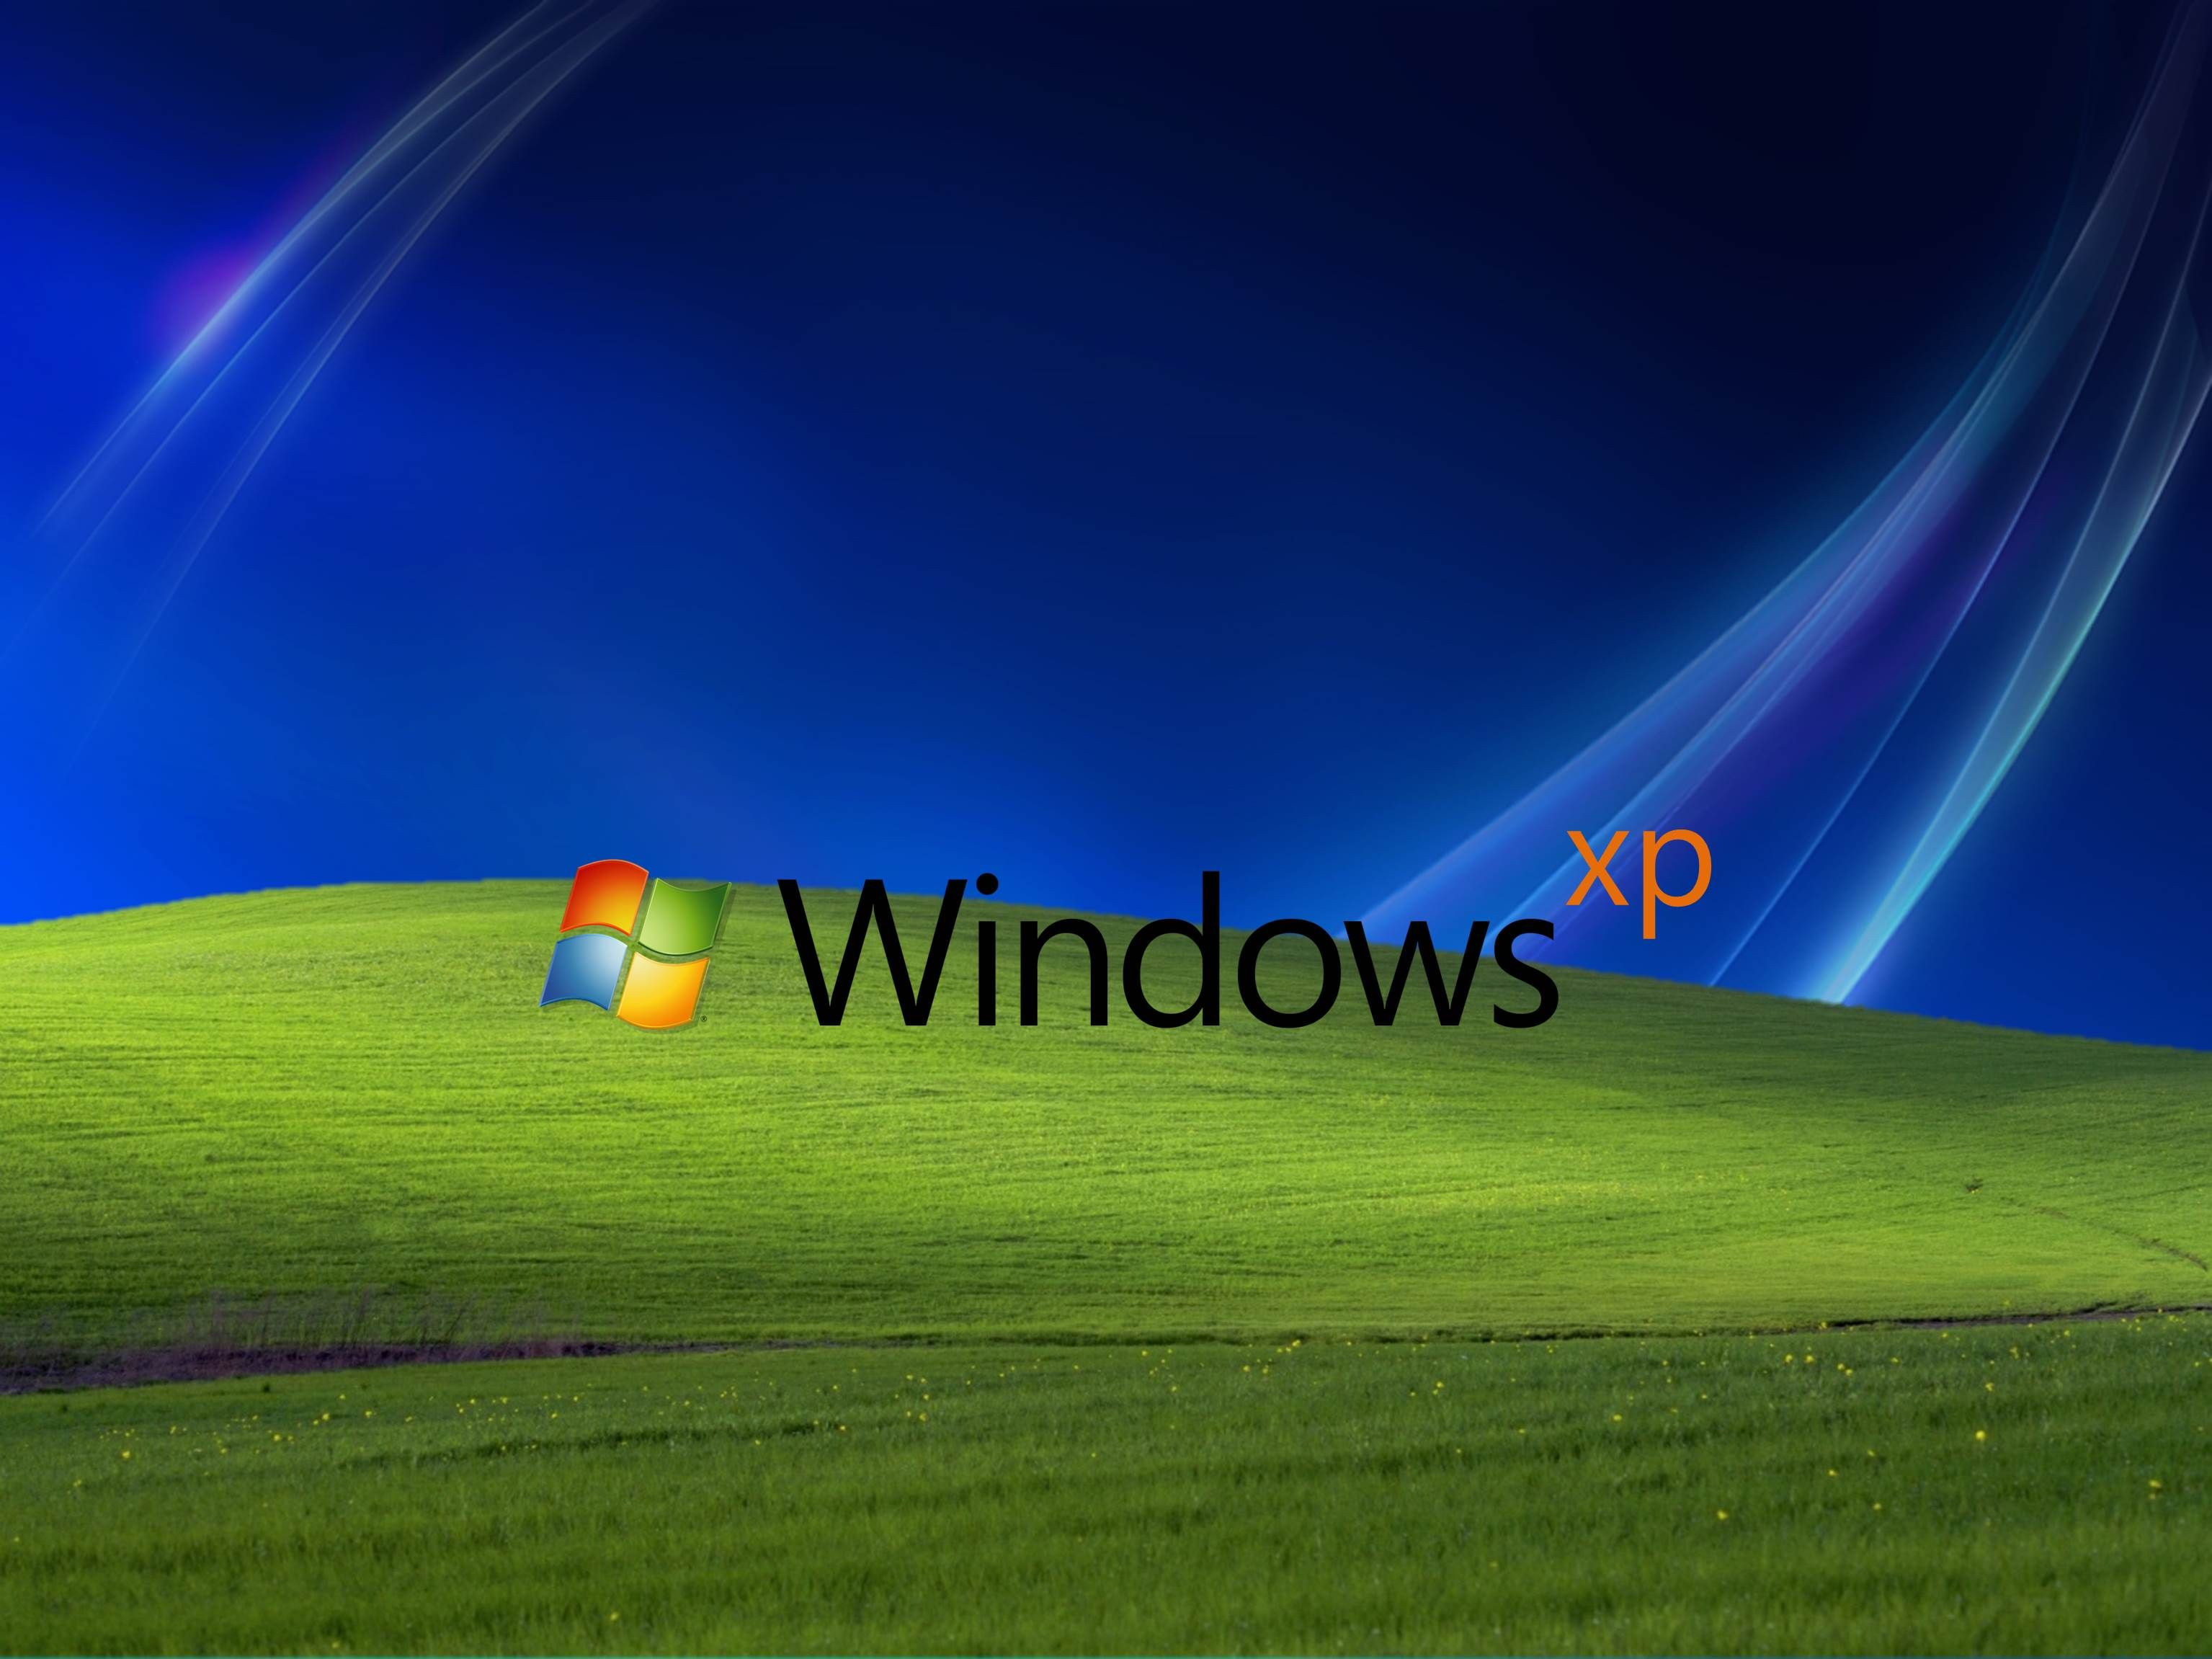 hd wallpapers for windows xp wallpapers beautiful wallpapers